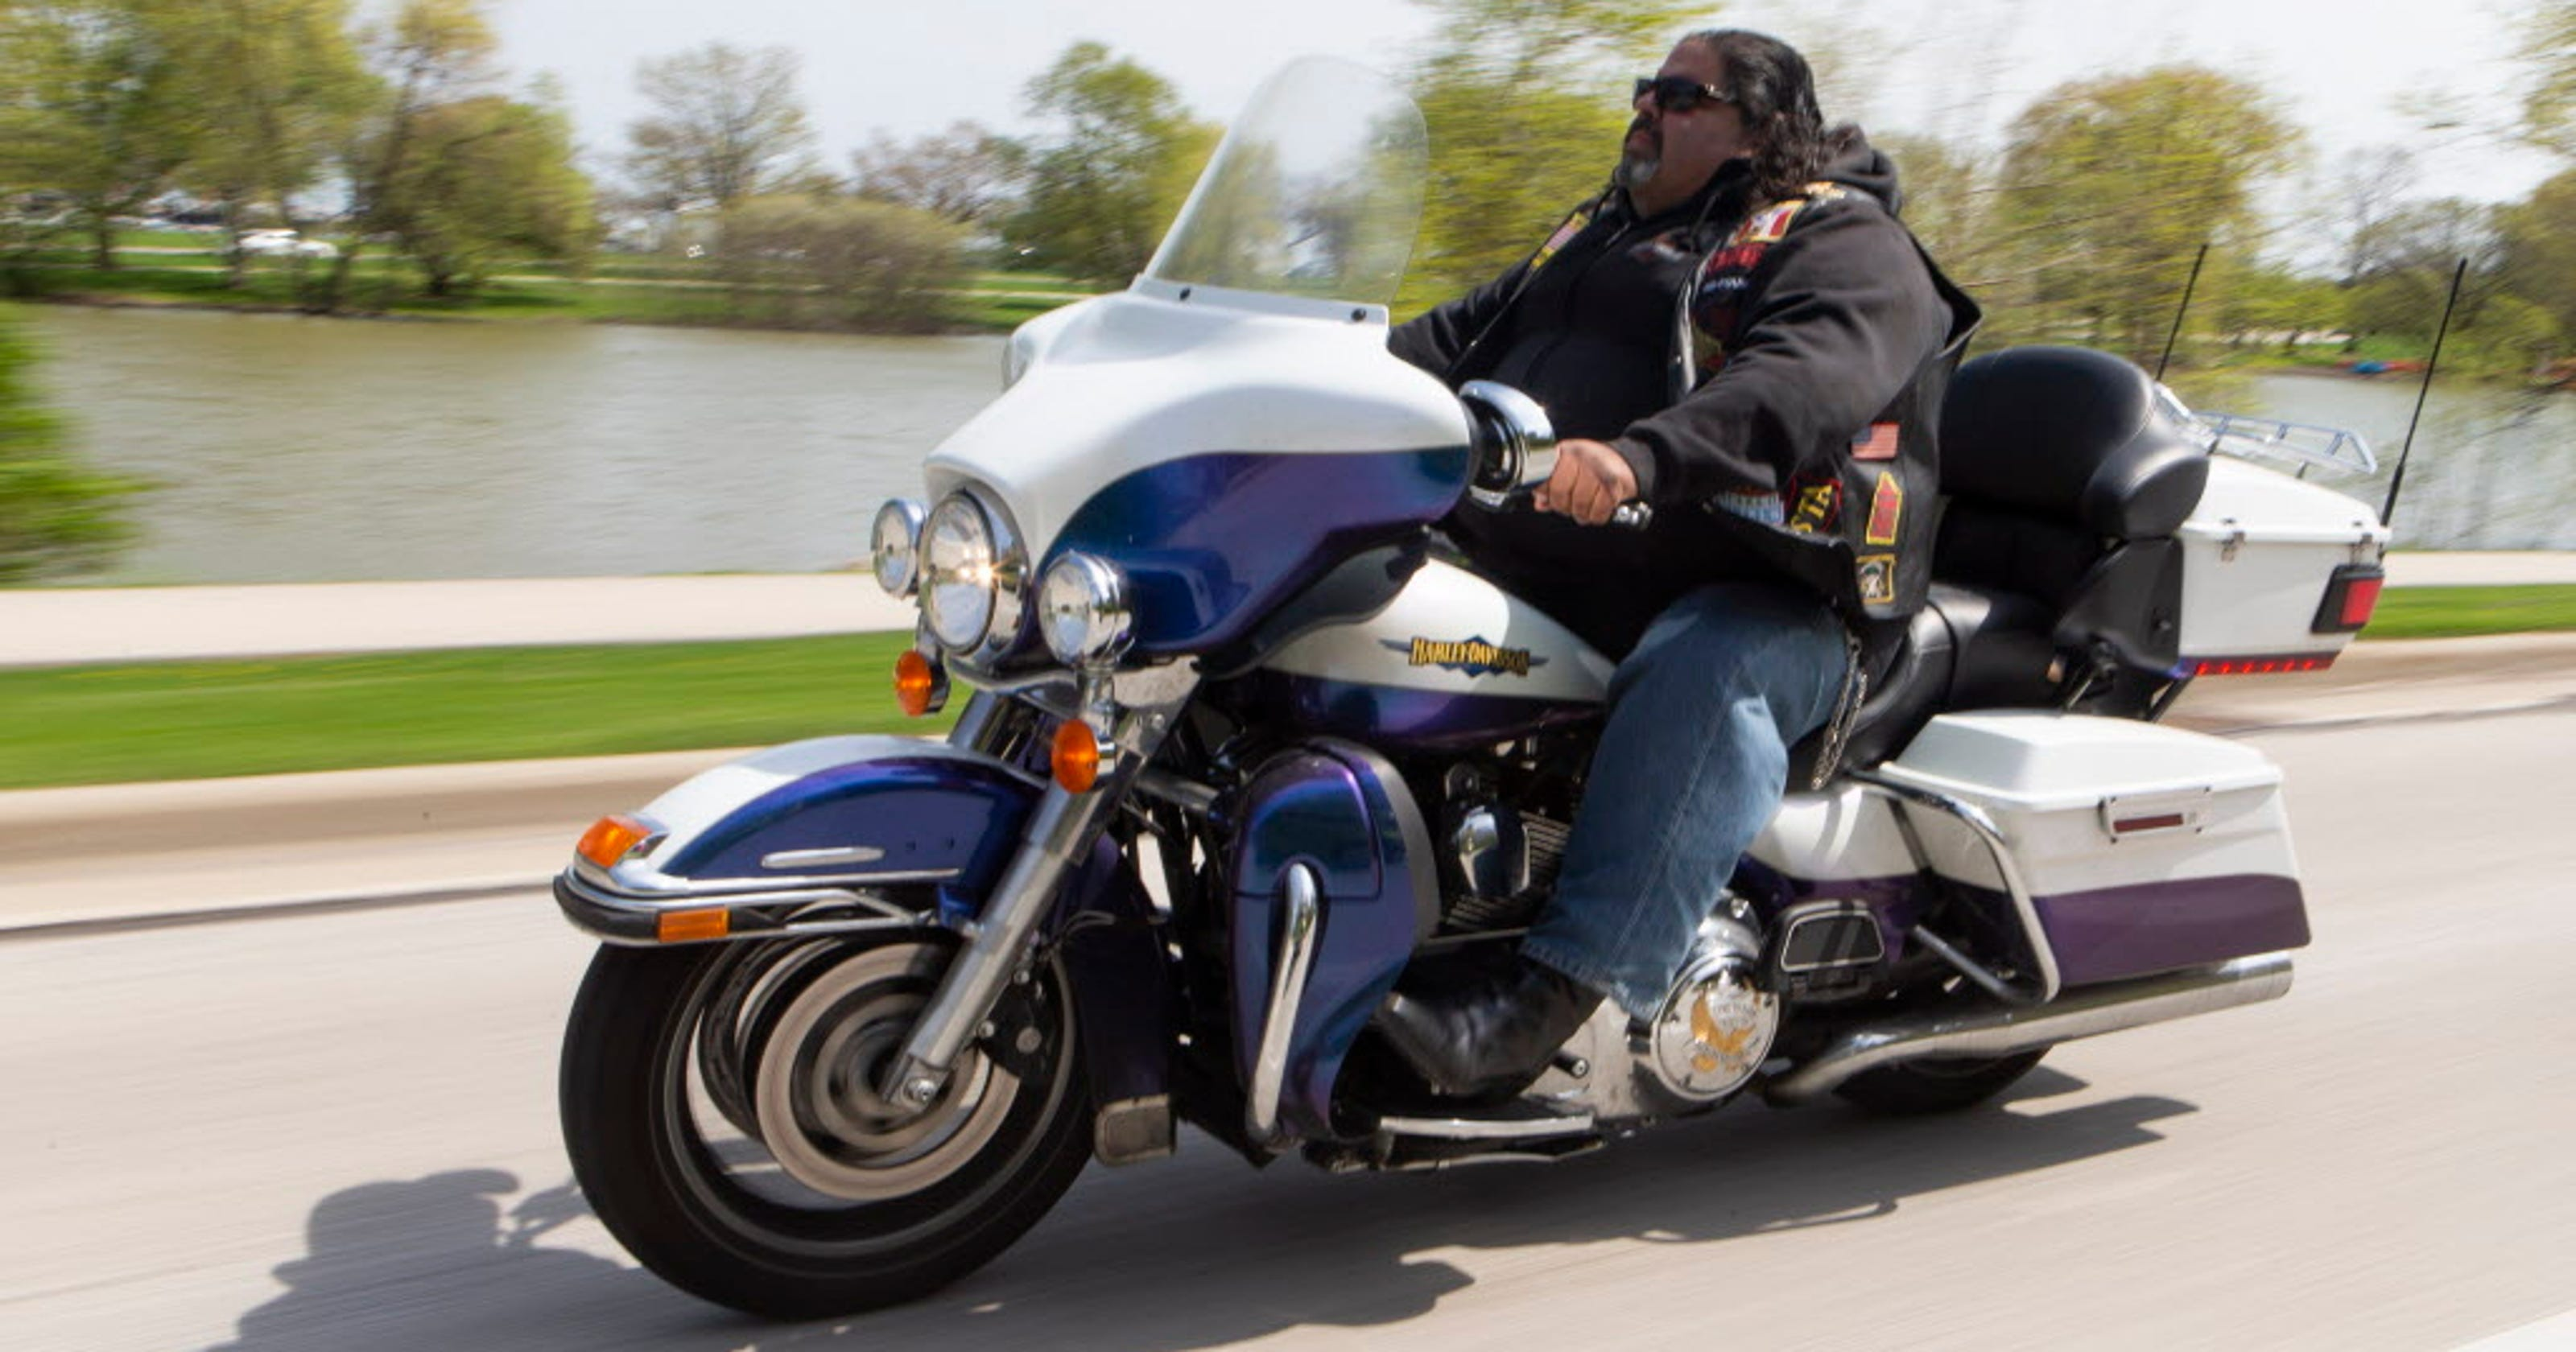 Harley-Davidsons: Is motorcycle noise sweet or a din?